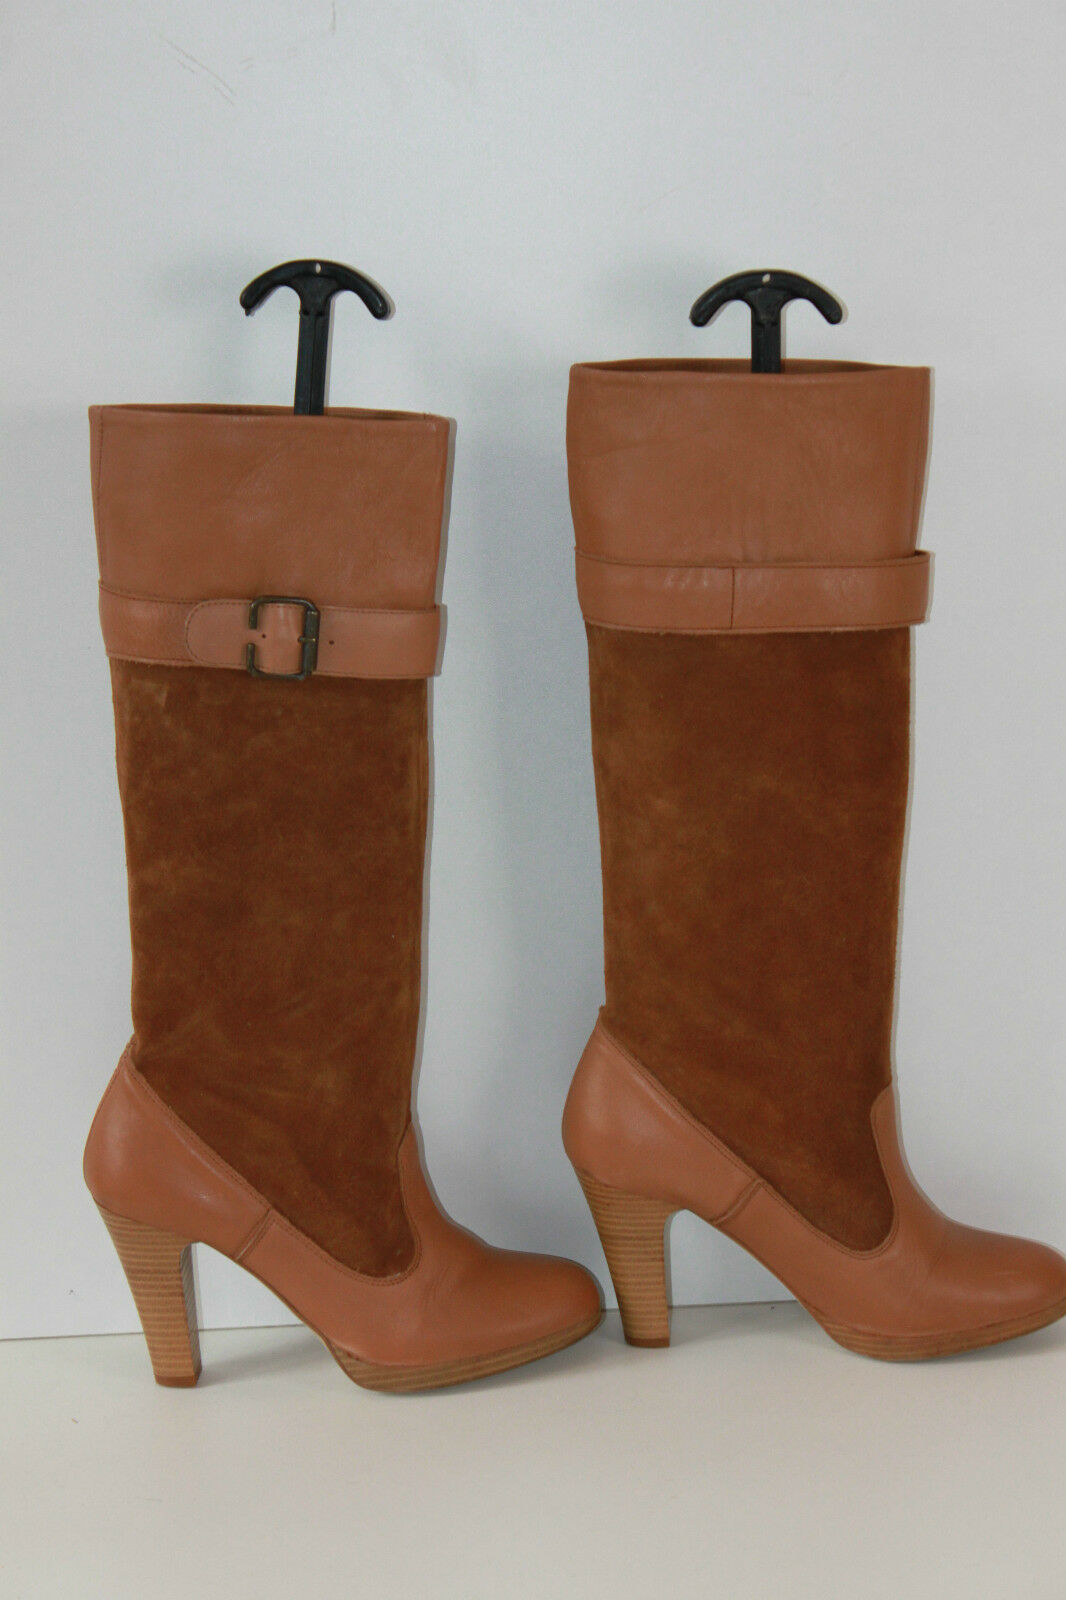 Boots ZARA TRAFALUC Leather and Suede Brown T 39 TOP CONDITION